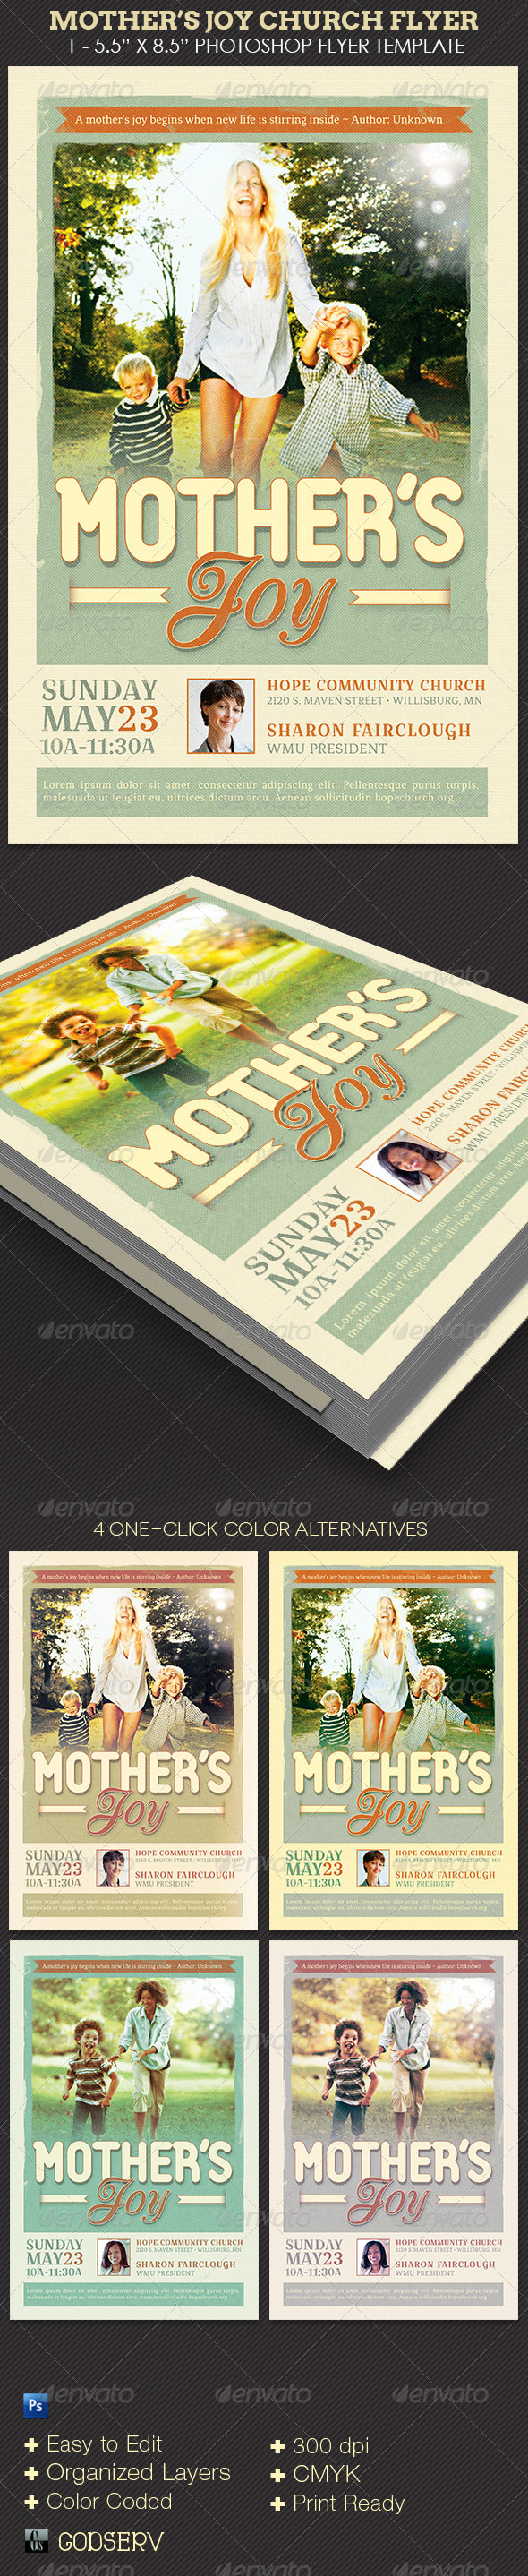 Mother's Joy Church Flyer Template - Church Flyers